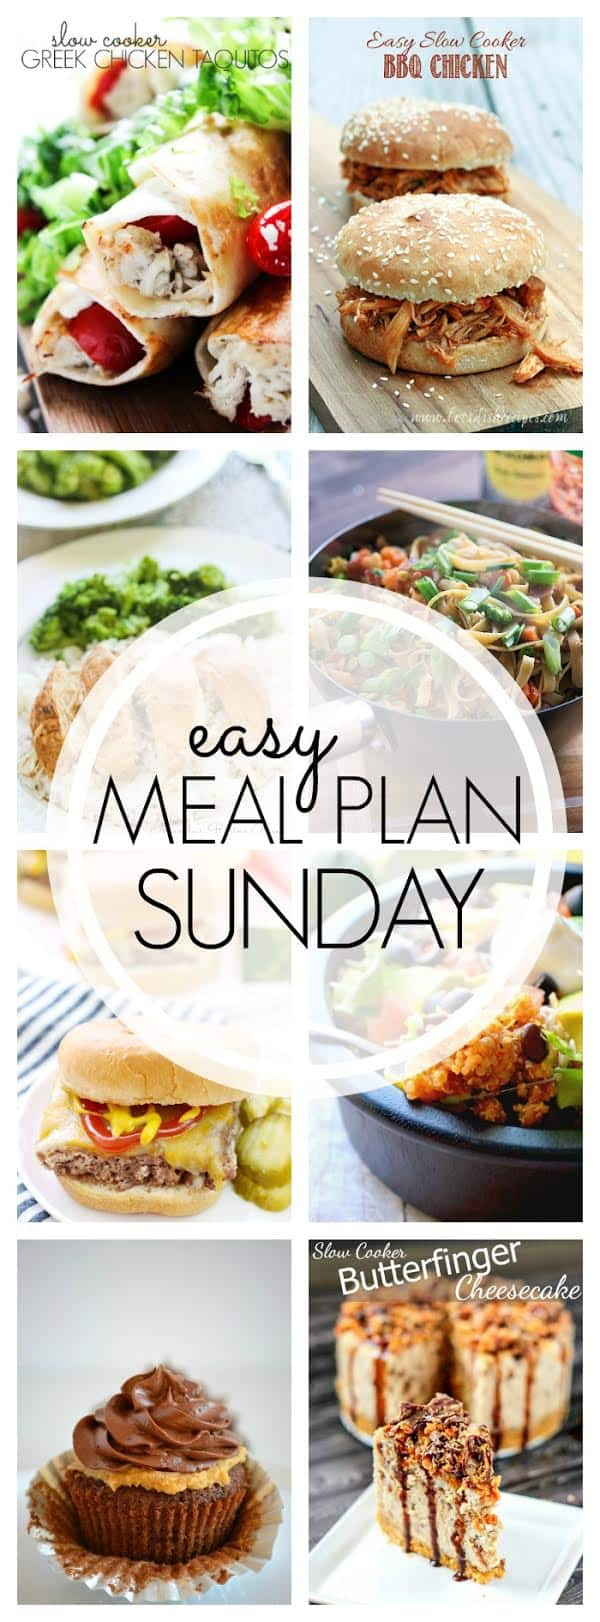 Weekly Meal Plan - this all looks awesome!